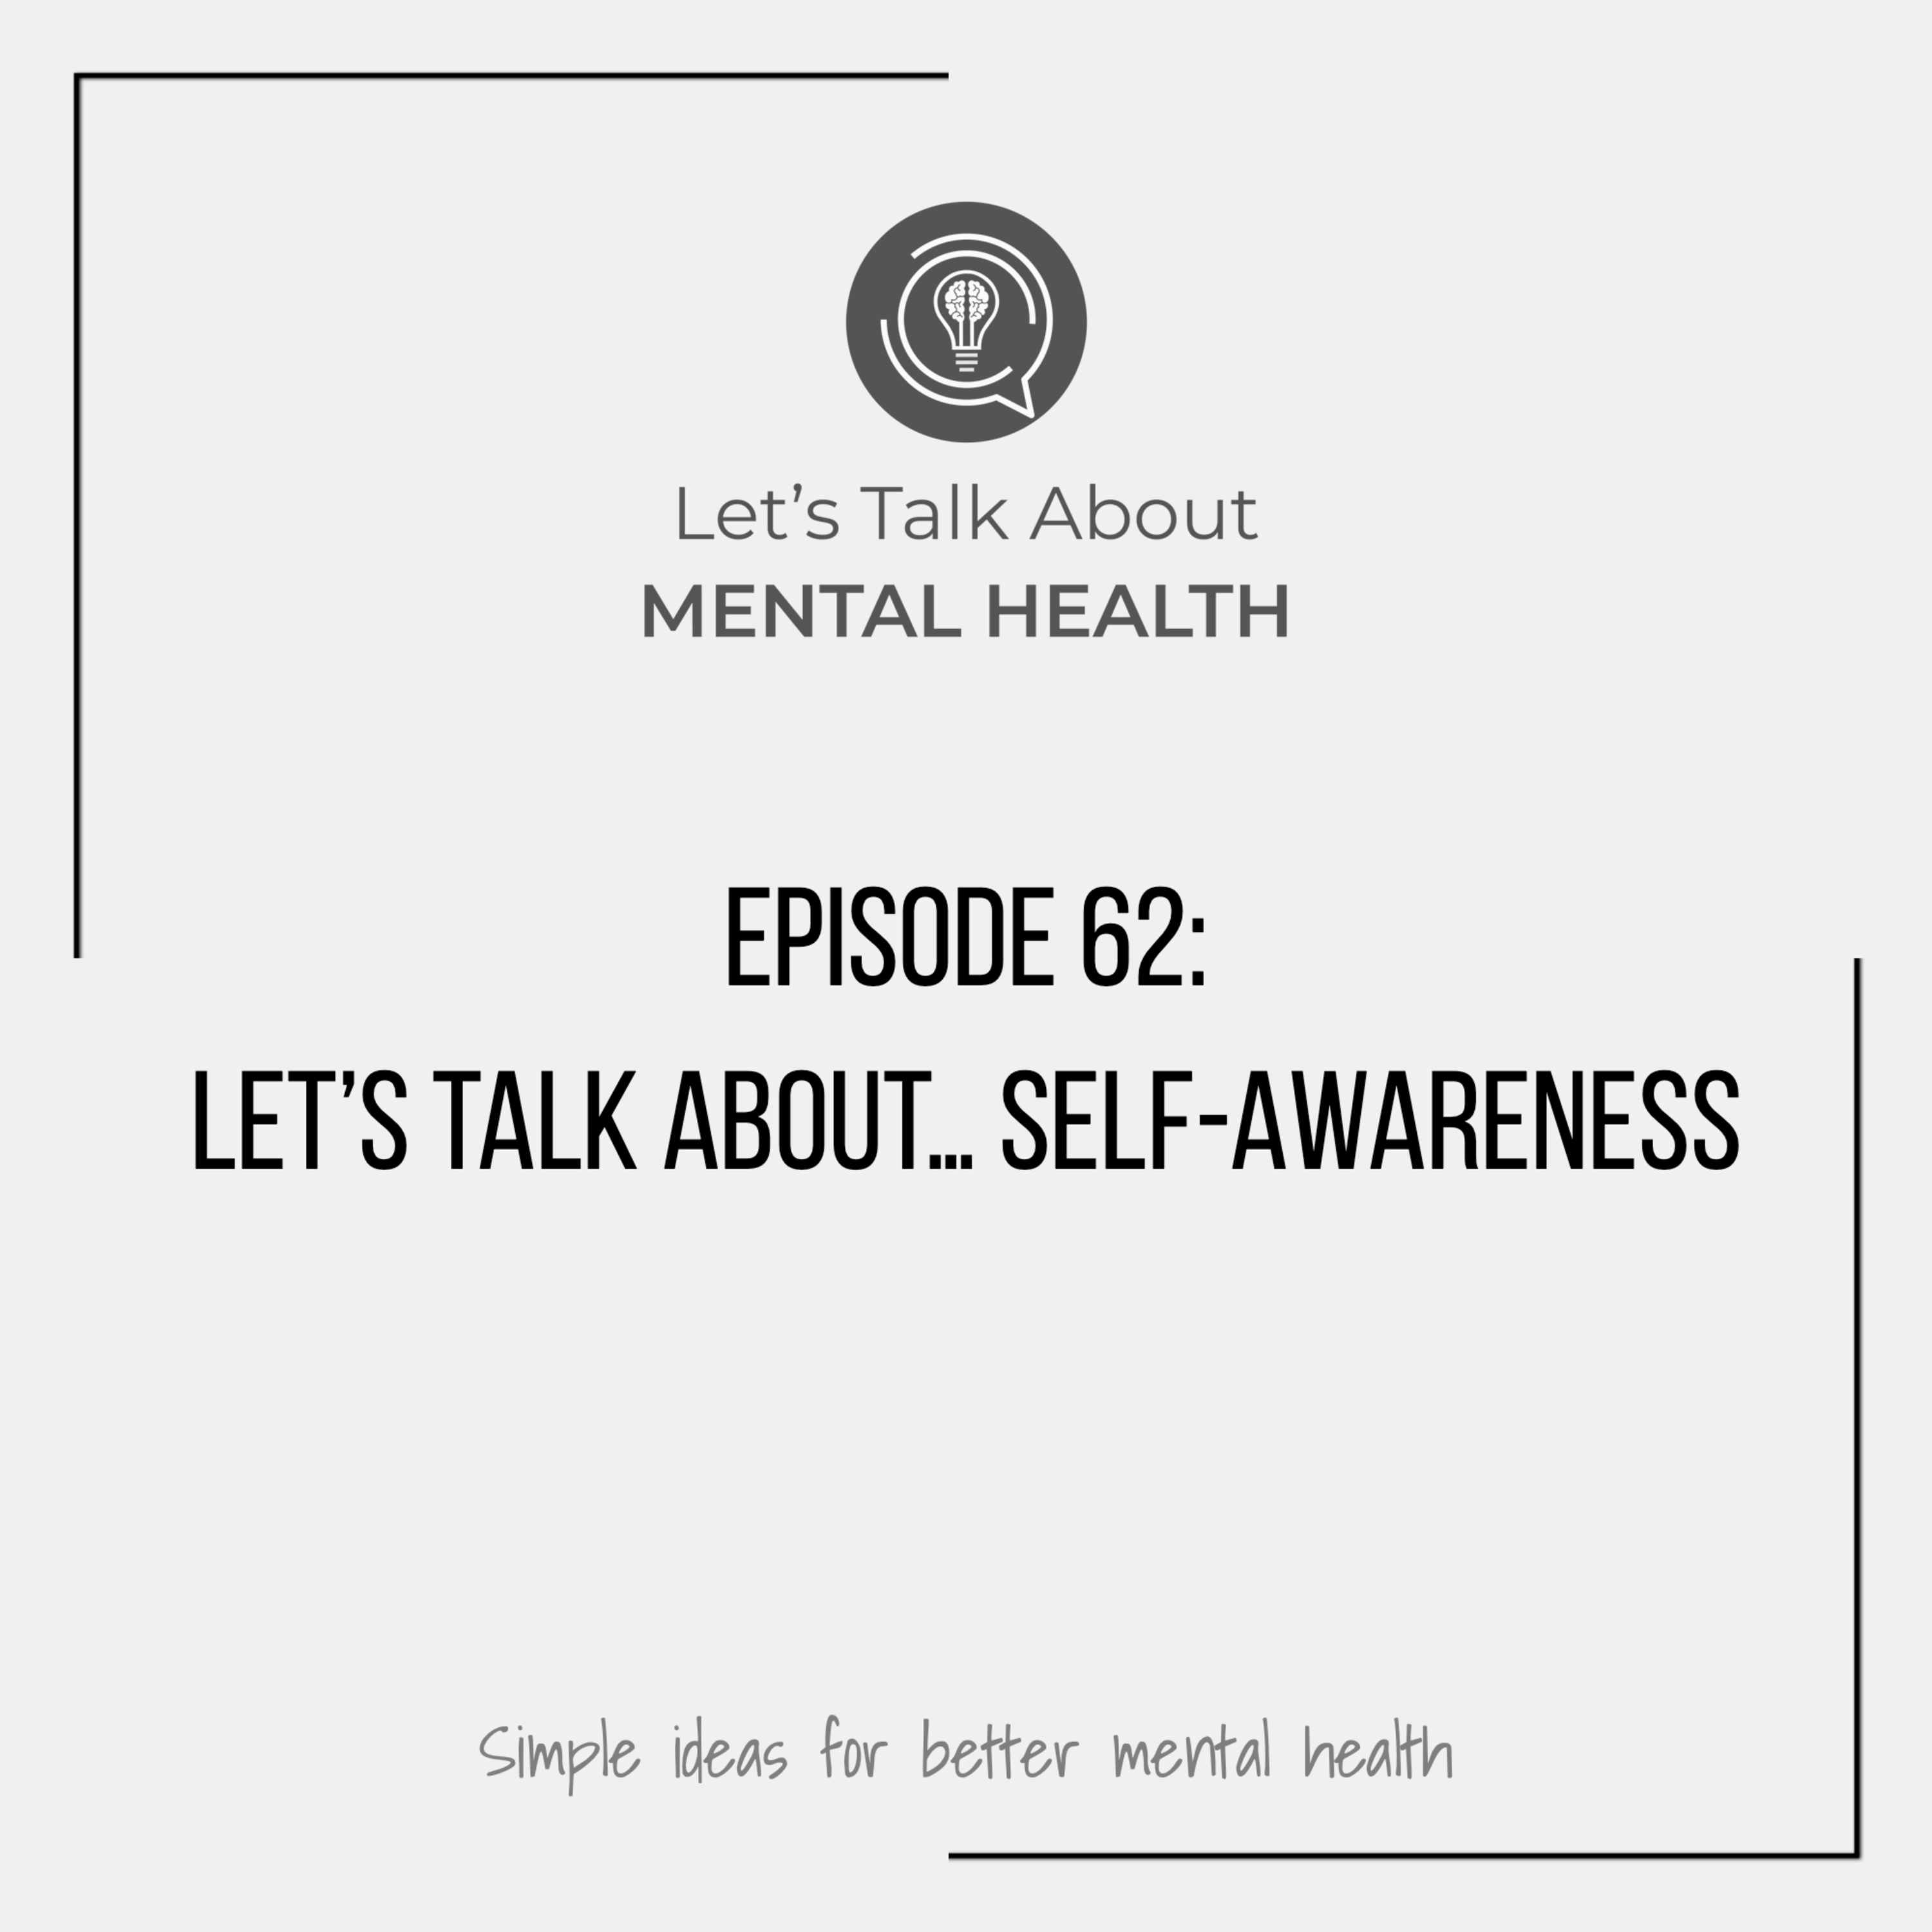 Let's Talk About Mental Health - Let's Talk About... Self-Awareness